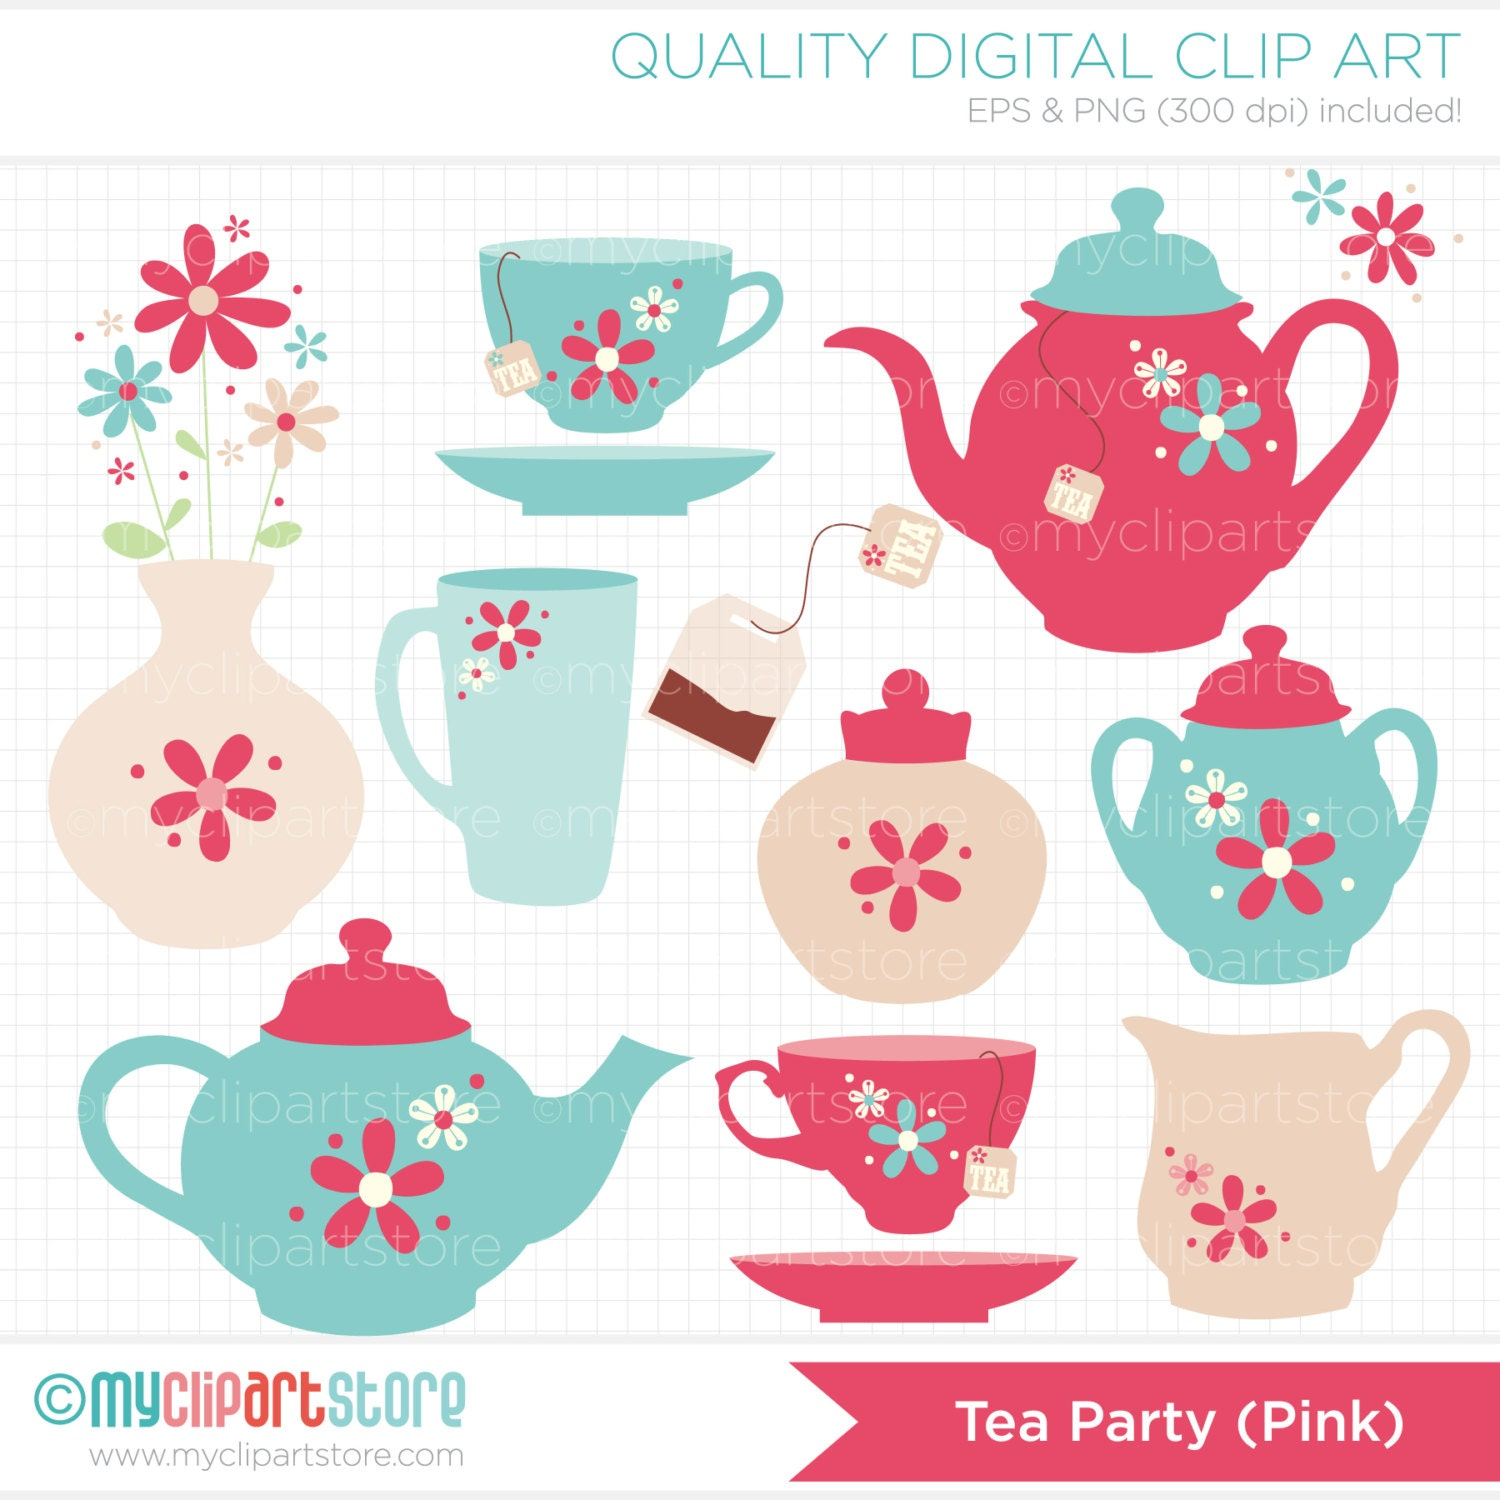 This is a picture of Fan Tea Party Clip Art